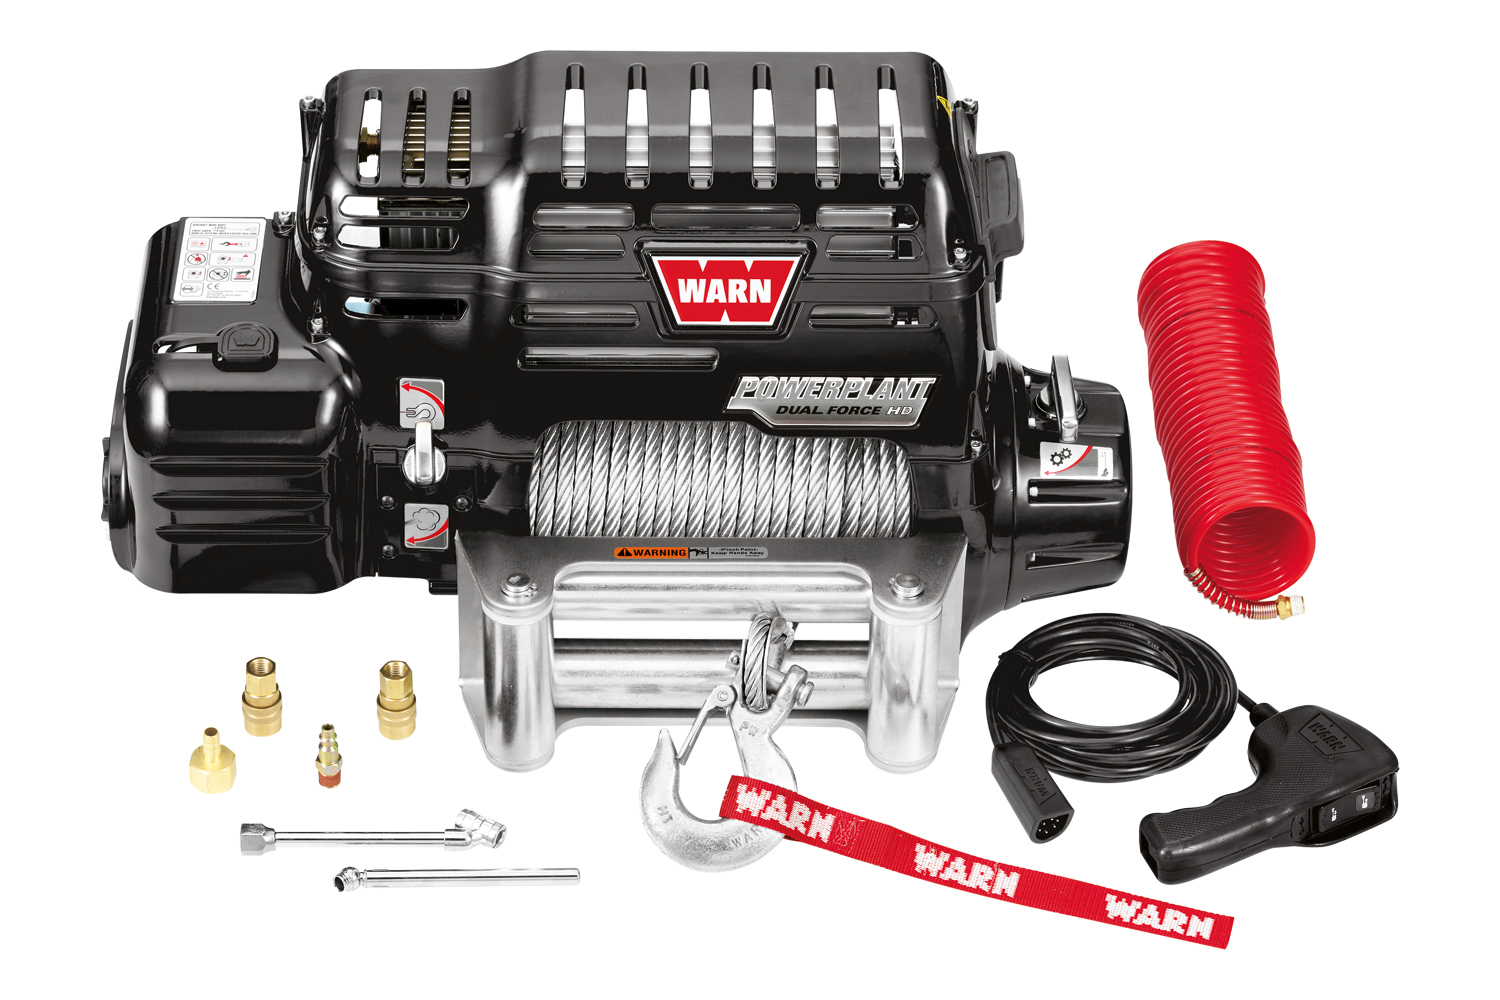 Warn PowerPlant Dual Force HP Electric Winch with Air Compressor